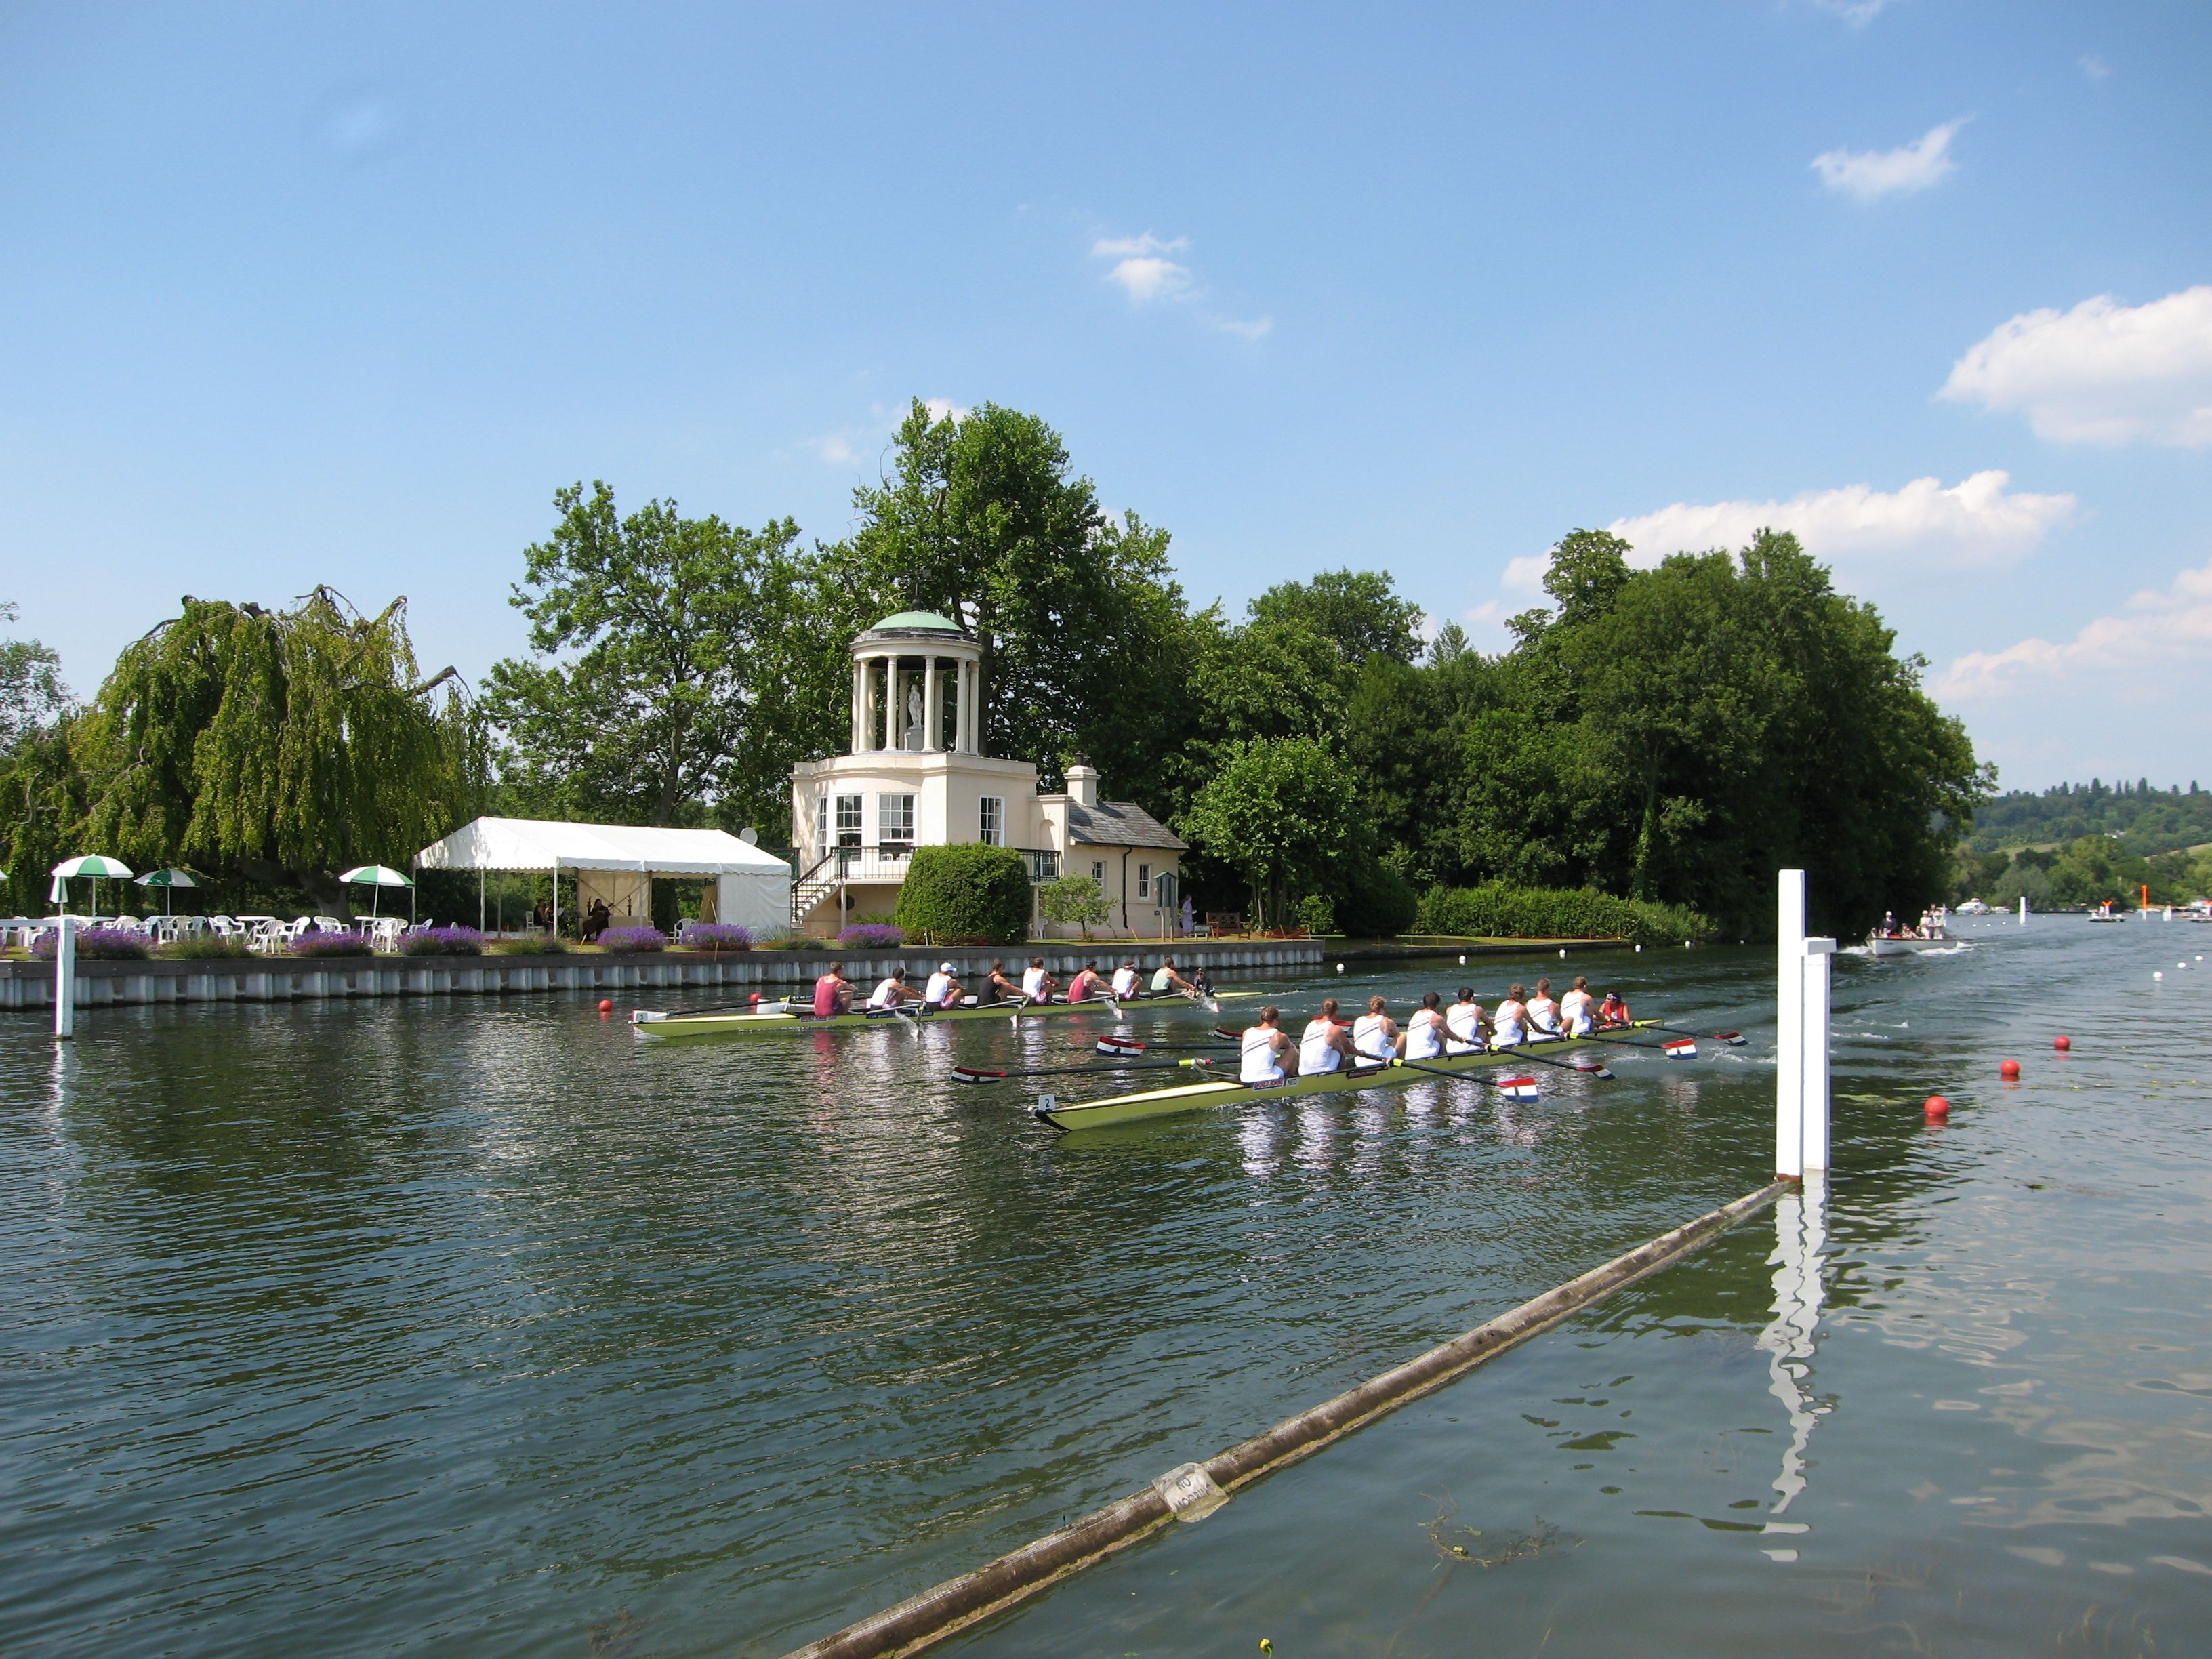 Riverside view from Temple Island Enclosure http://www.ambro-events.com/hospitality/rowing/henley-royal-regatta-hospitality/